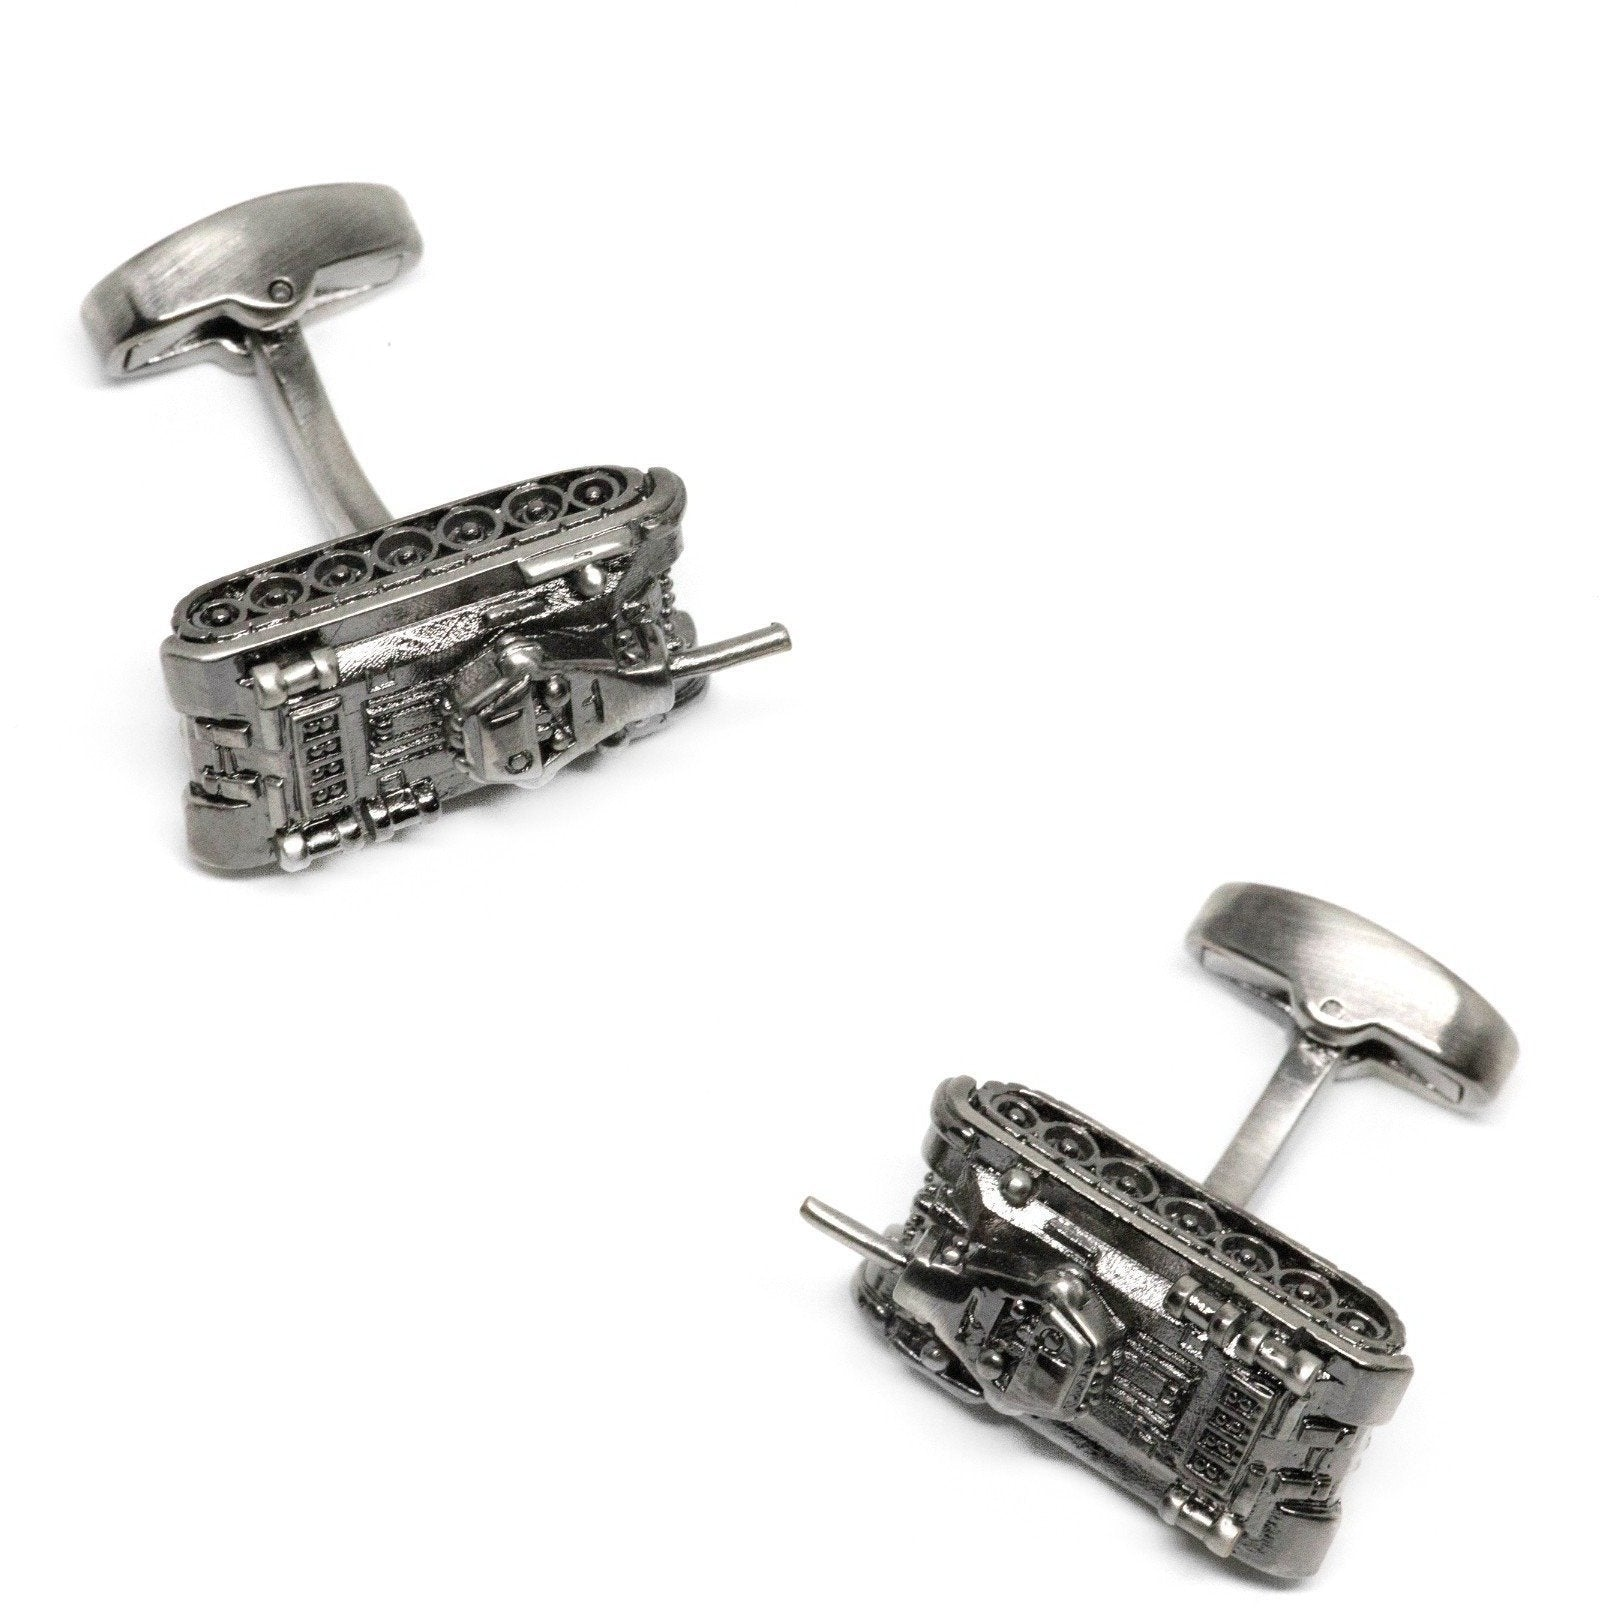 Gunmetal Army Tank Cufflinks, Novelty Cufflinks, Cuffed.com.au, CL6641, Automotive, Military, Military & Weaponry, Clinks Australia